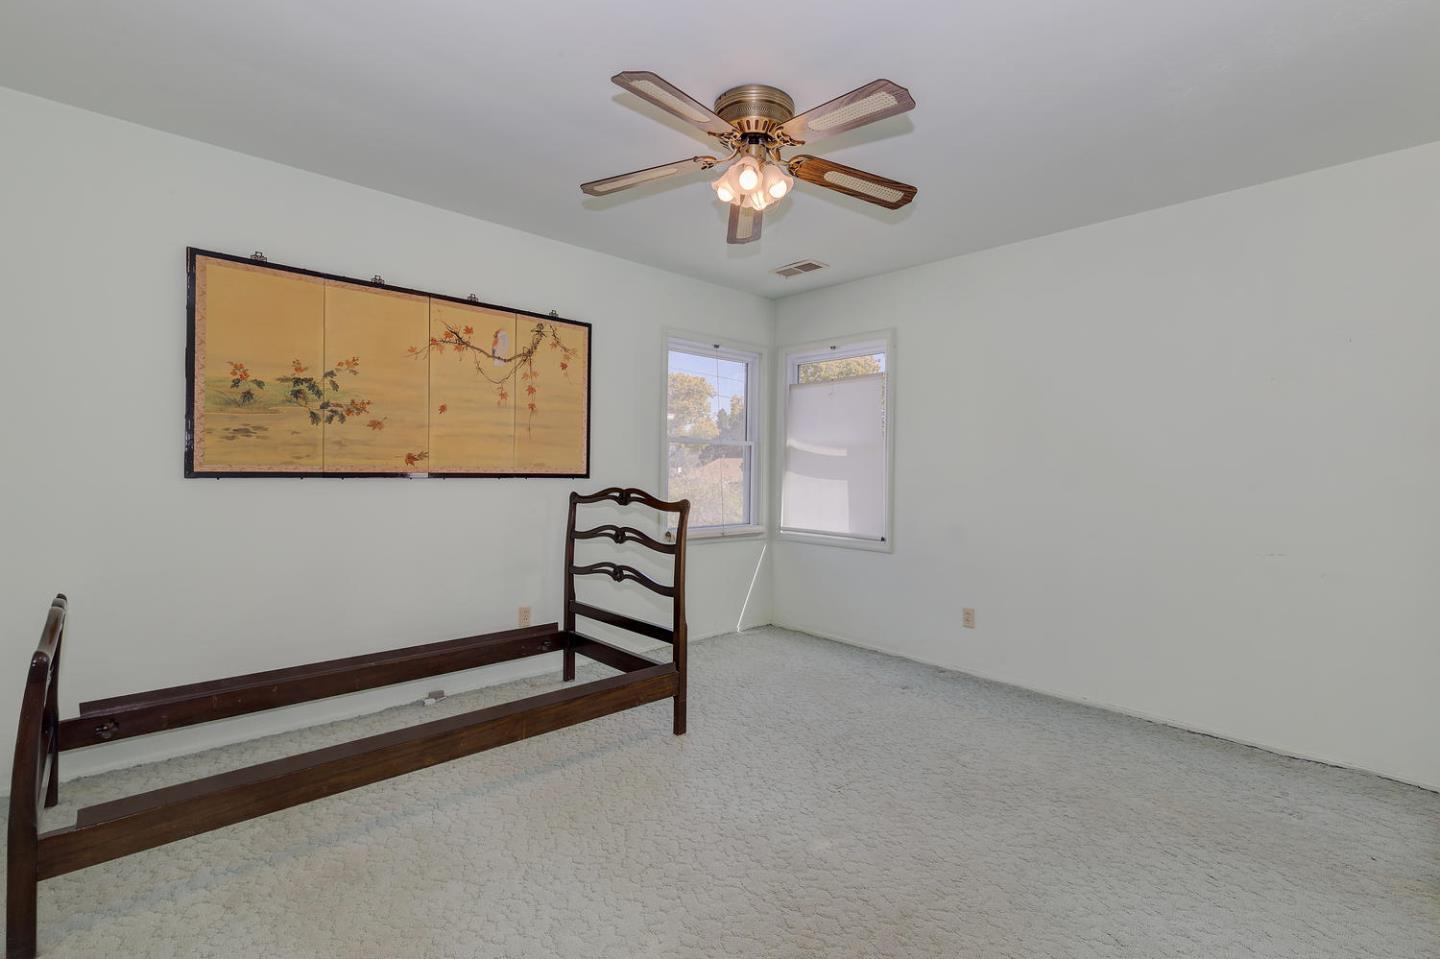 Additional photo for property listing at 1187 Crompton Rd  REDWOOD CITY, CALIFORNIA 94061